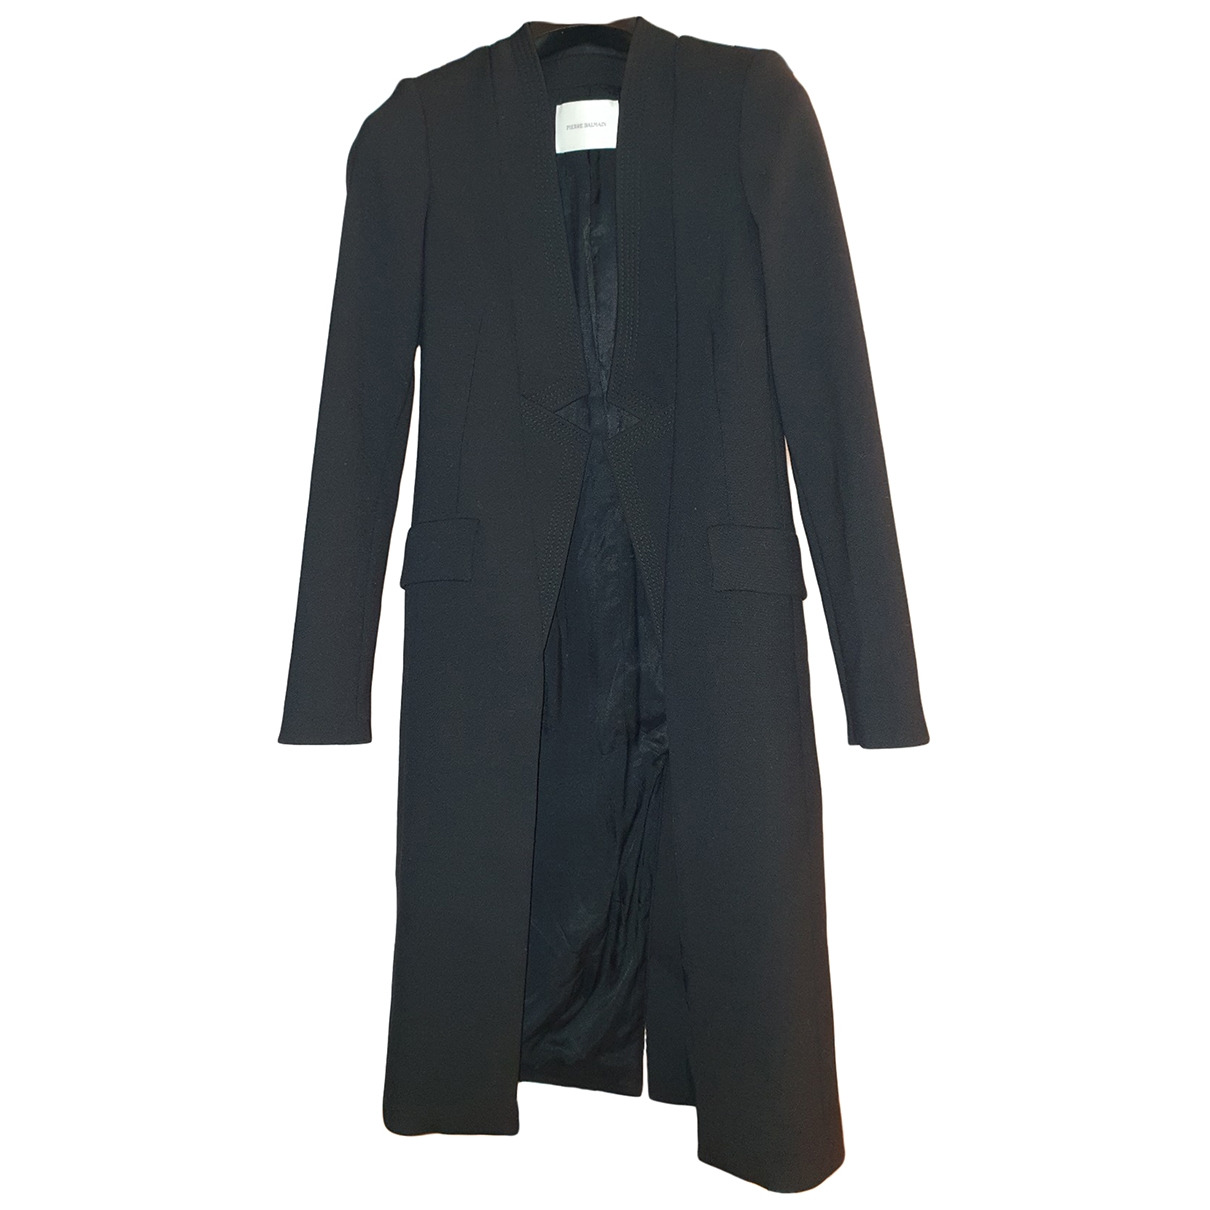 Pierre Balmain \N Black coat for Women 36 FR